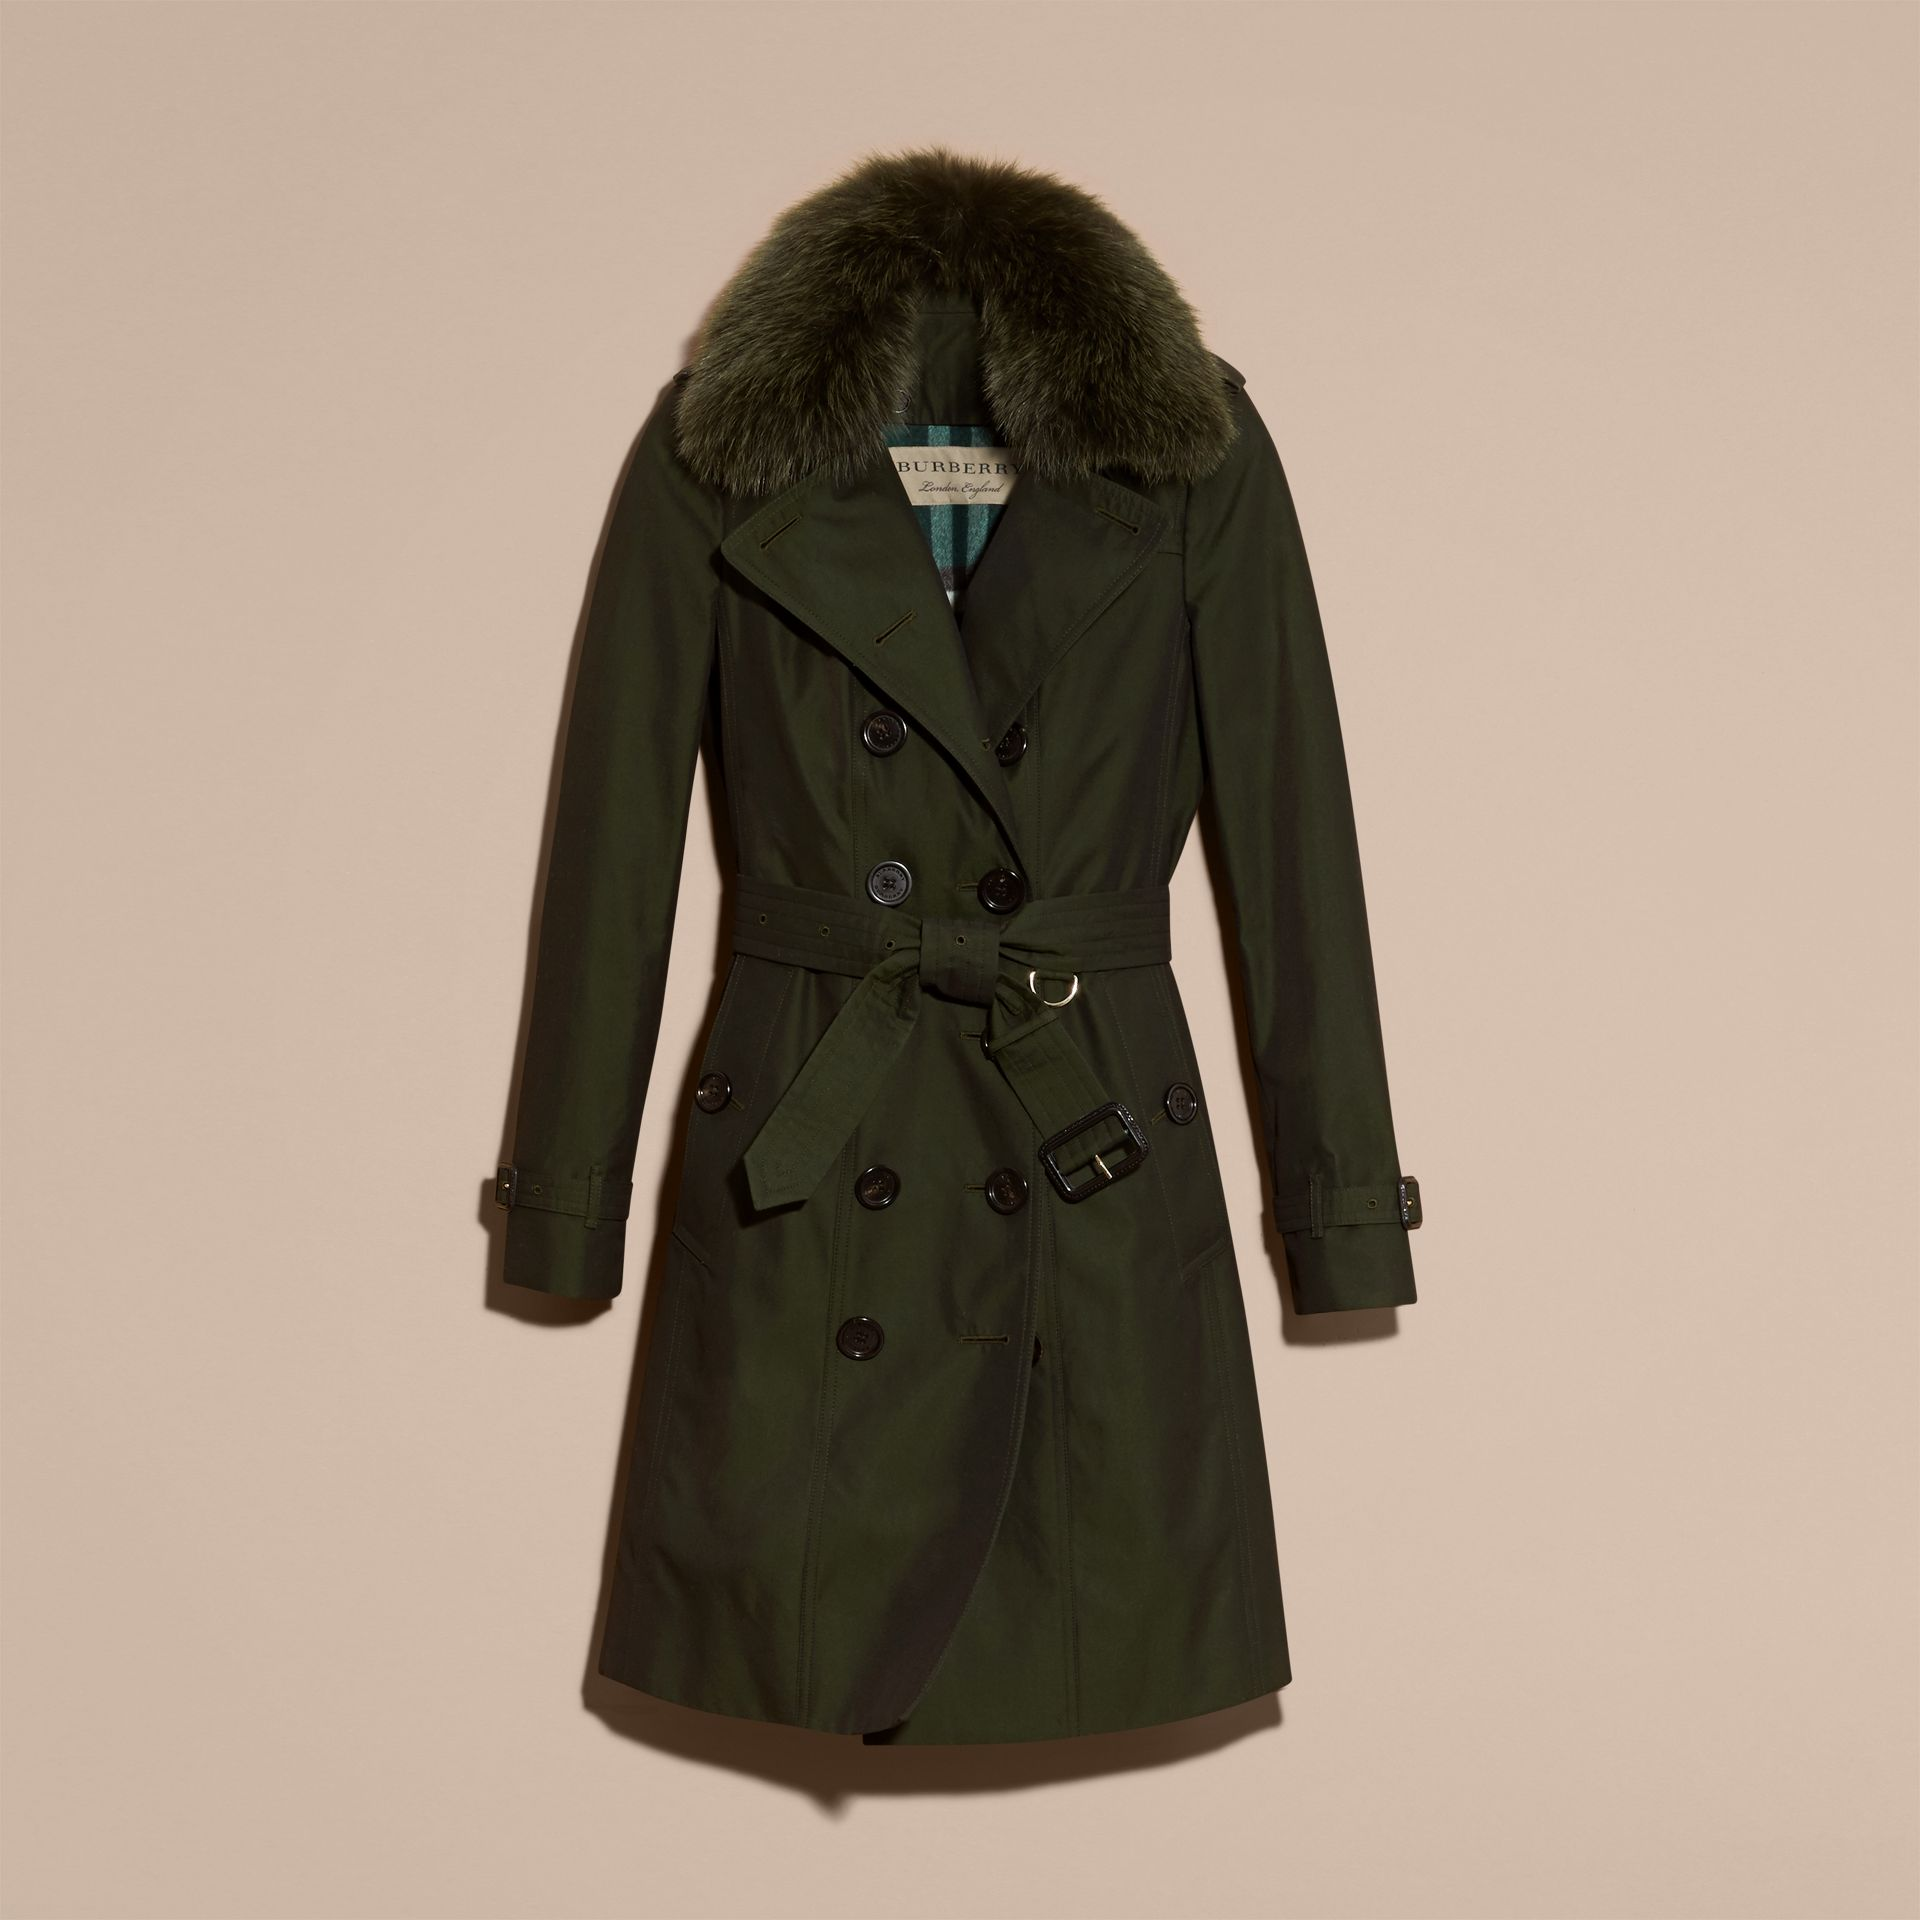 Dark cedar green Cotton Gabardine Trench Coat with Detachable Fur Trim Dark Cedar Green - gallery image 4